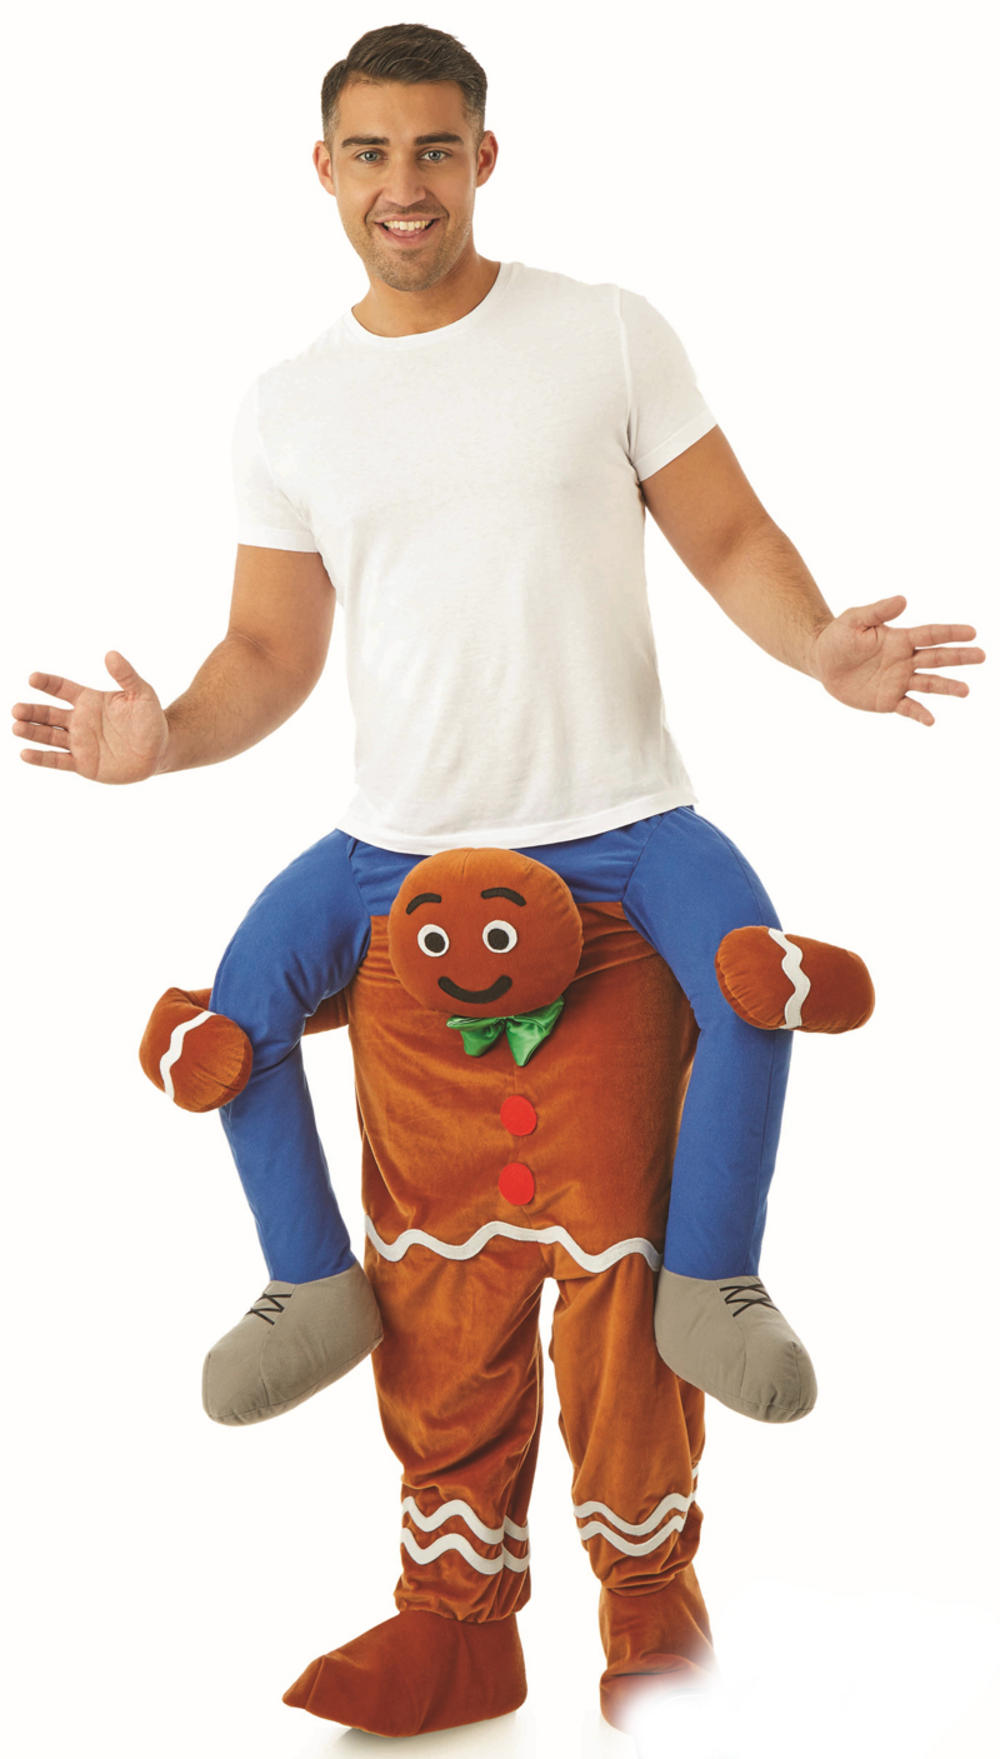 Lift Me Up Gingerbread Man Costume